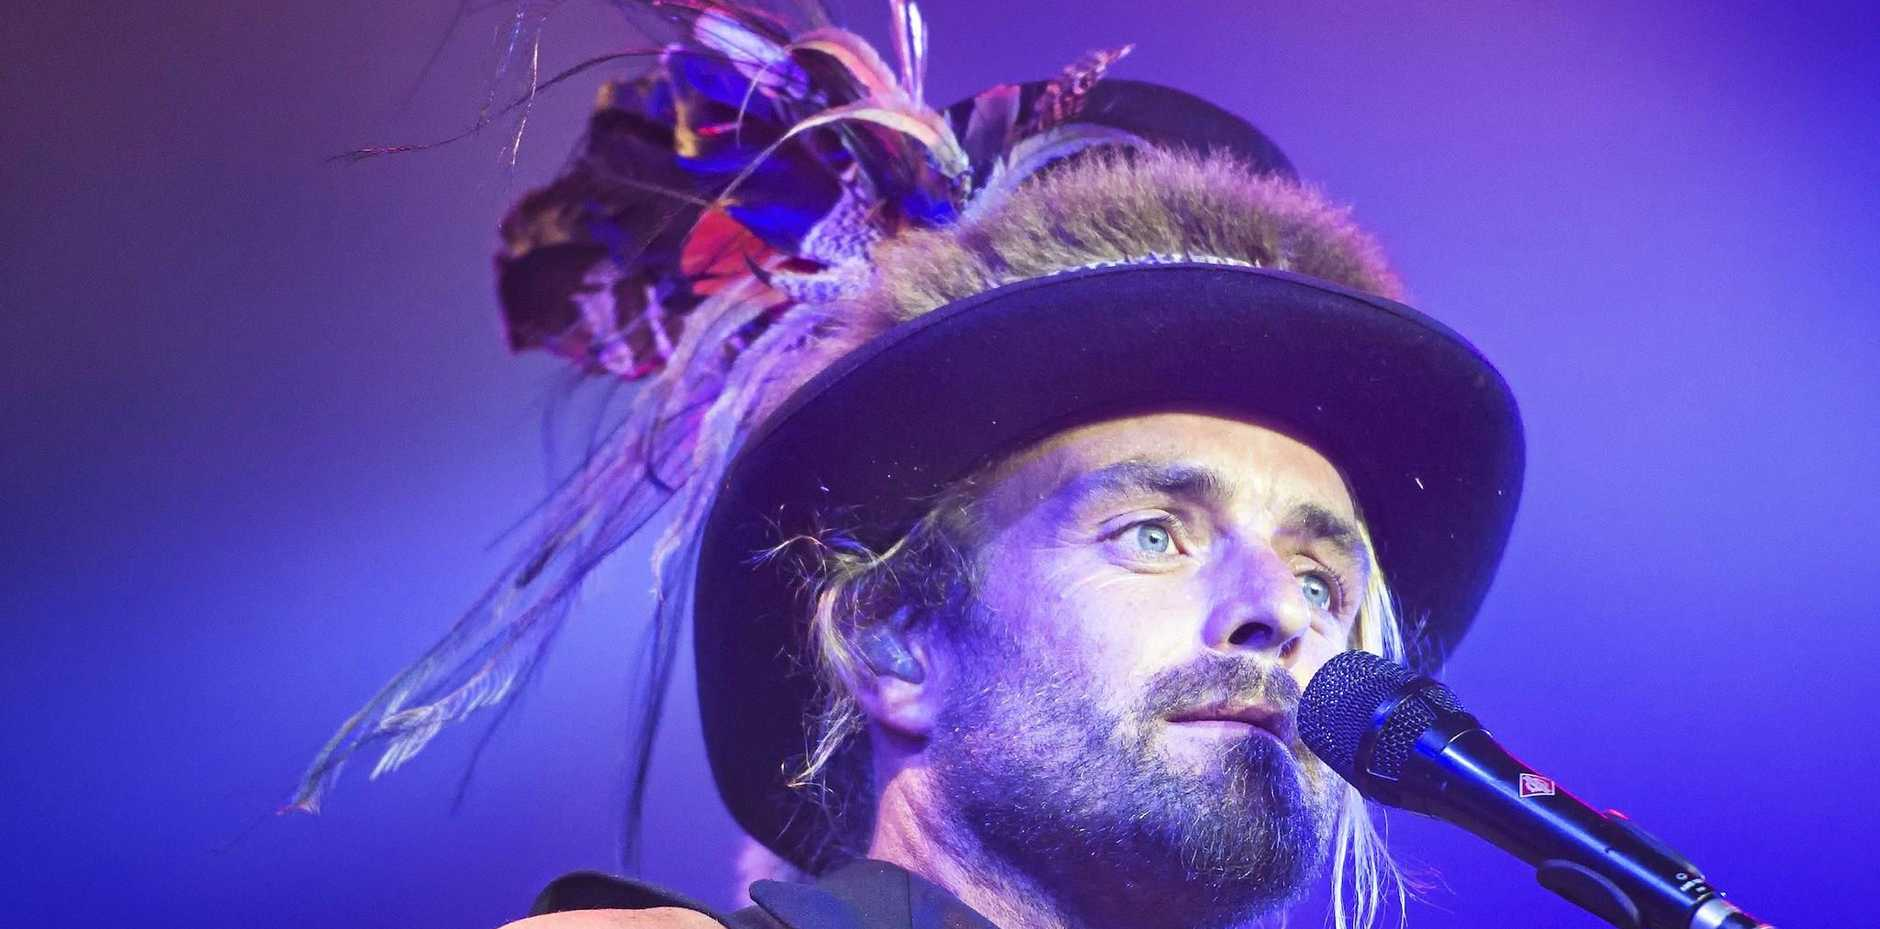 Australian singer songwriter Xavier Rudd at Bluesfest 2015.